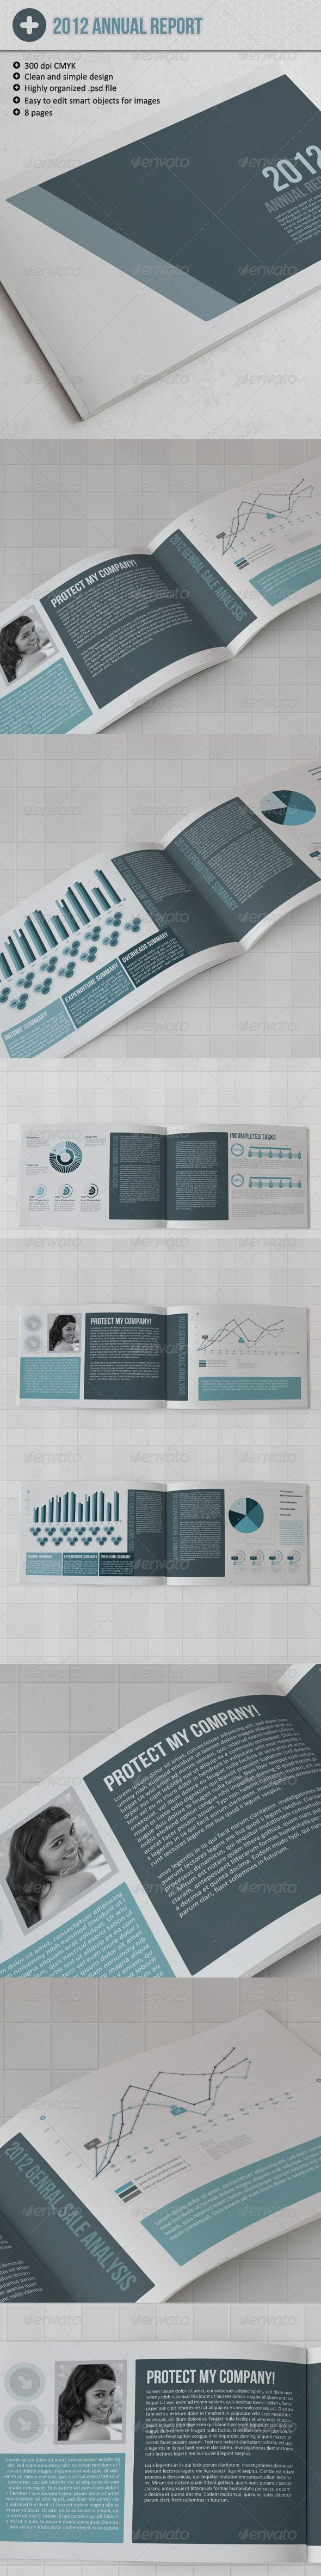 Print Templates - Infographic Brochure Template | GraphicRiver